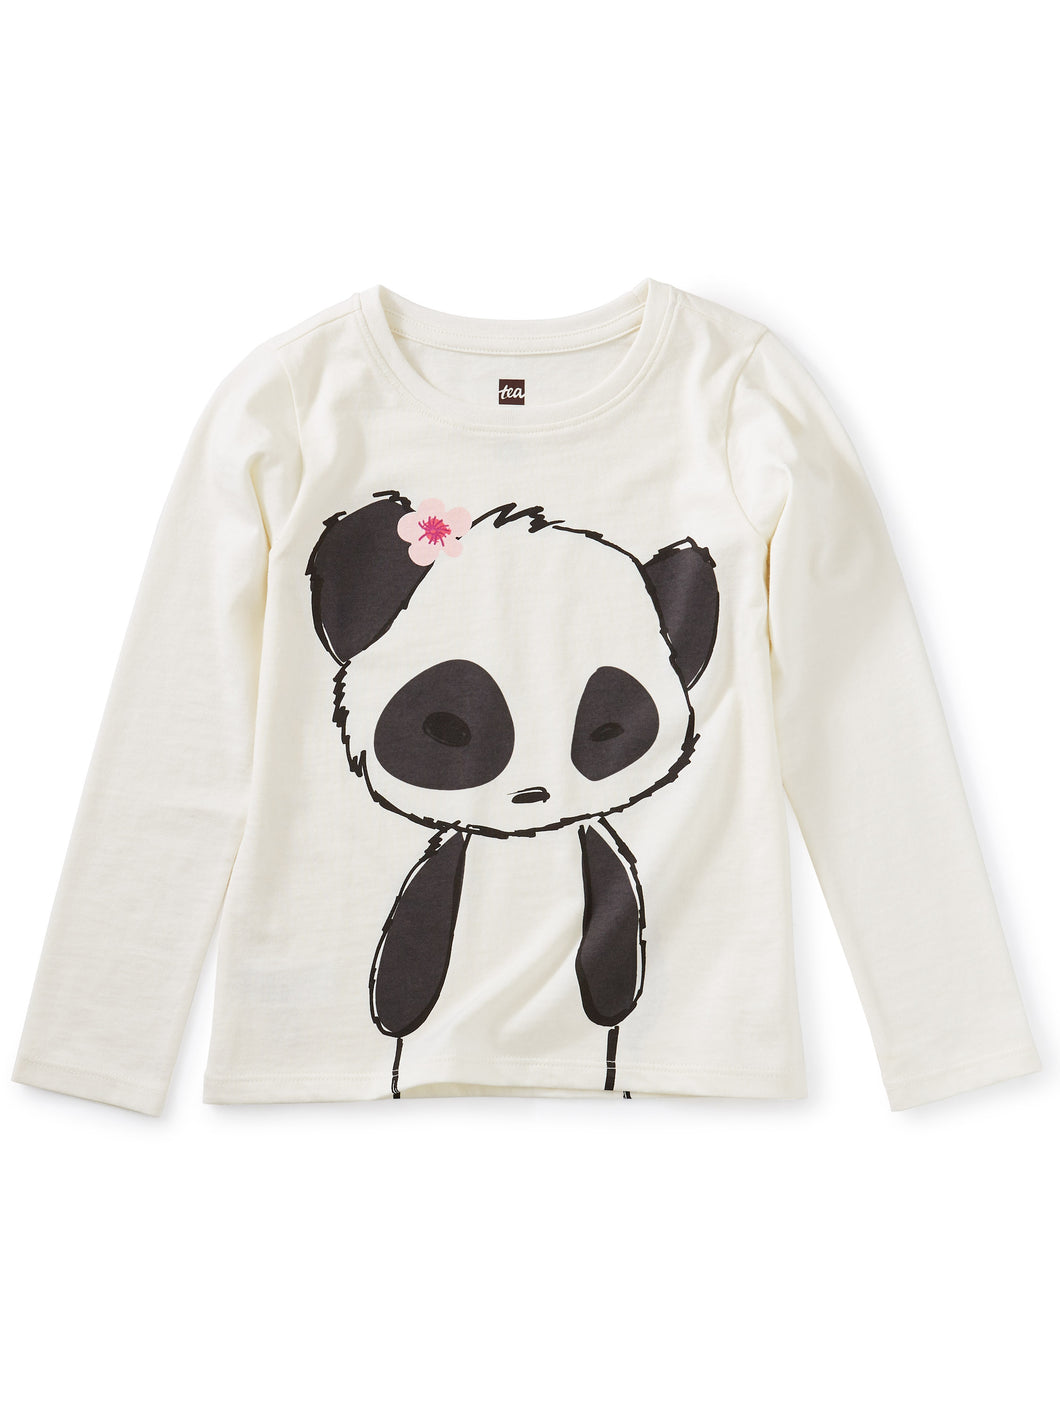 Tea Collection Panda Graphic Tee